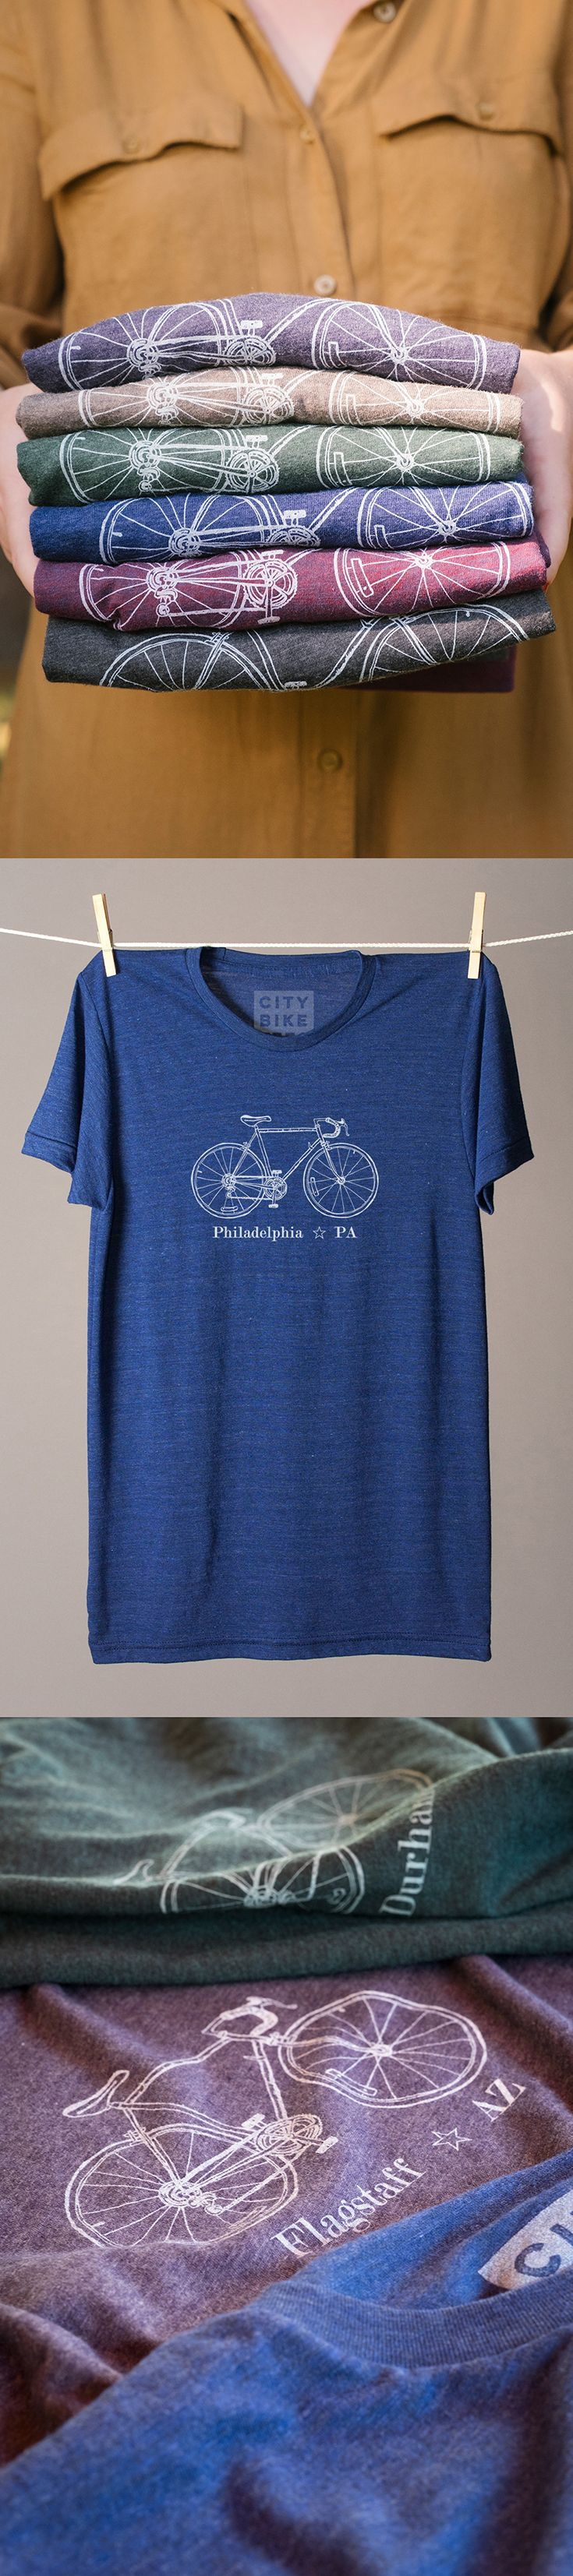 T shirt design quad cities - This Company Sells Bike Tees With Your City S Name On Them Screen Printed By Hand